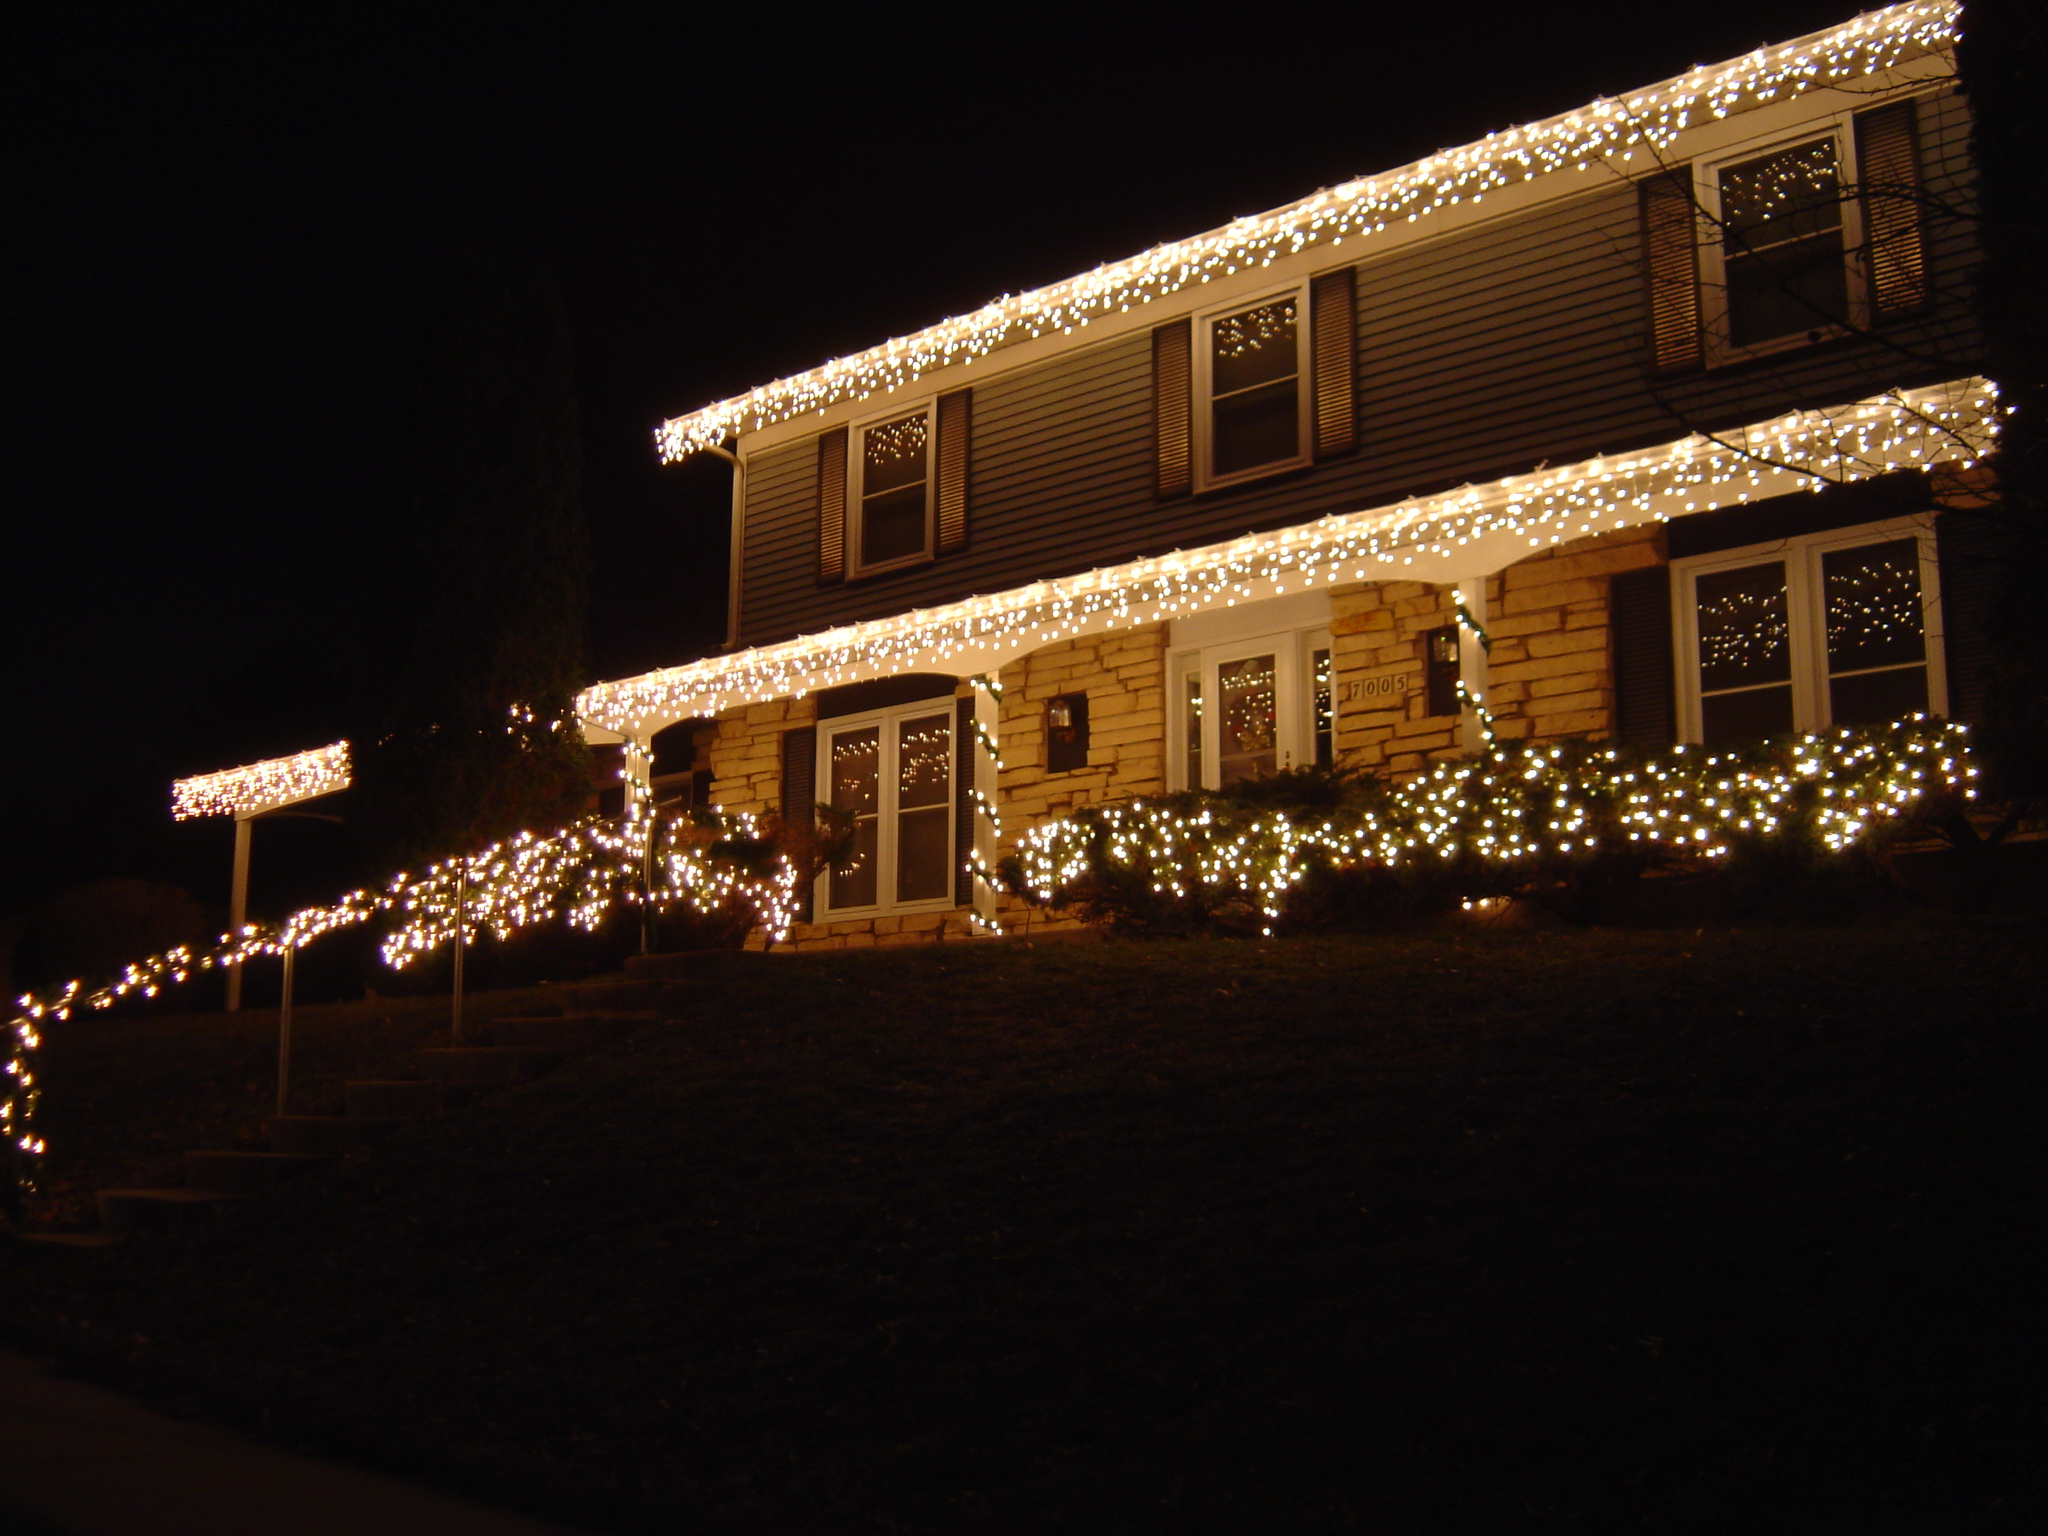 hanging lights on gutters